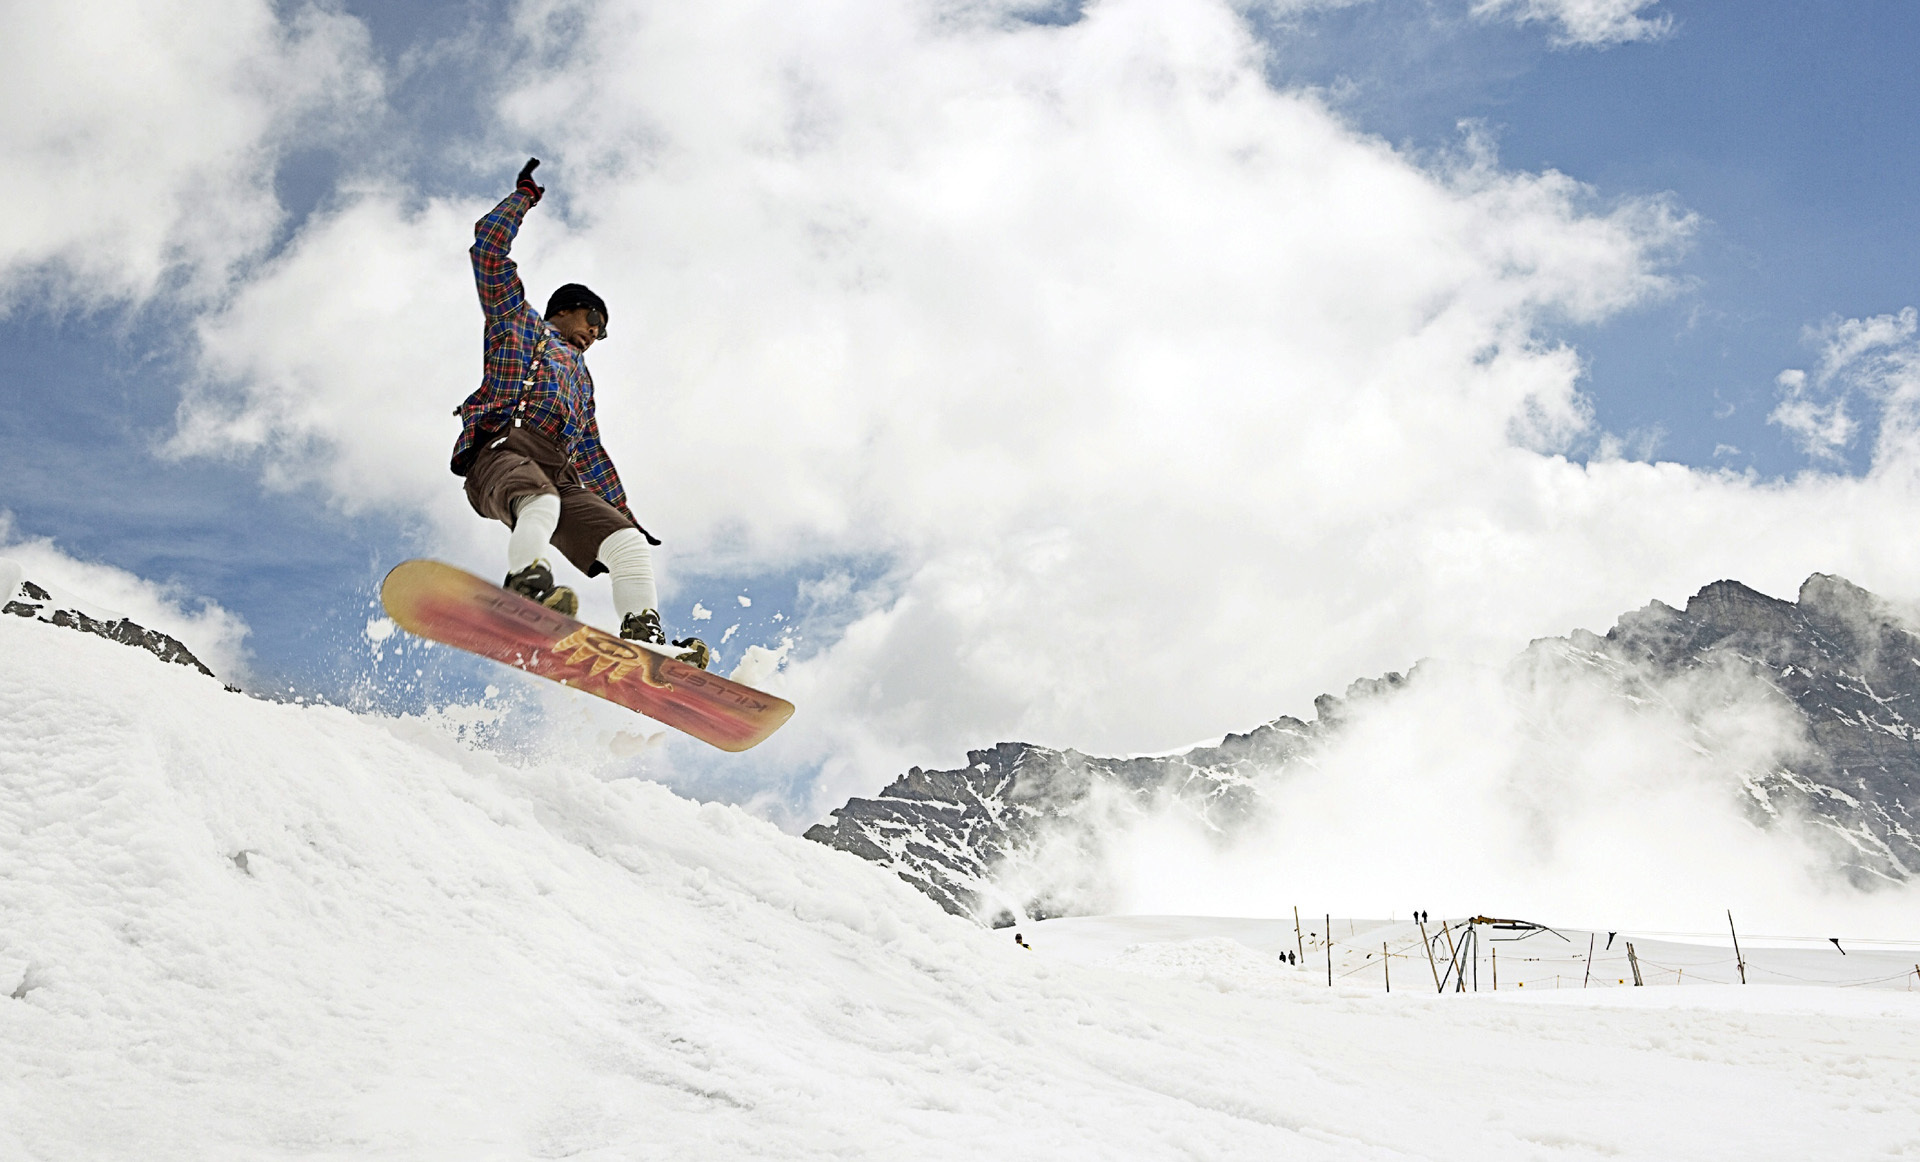 Wallpaper Hd Snowboarding Wallpaper Iphone: Snowboarding Full HD Wallpaper And Background Image